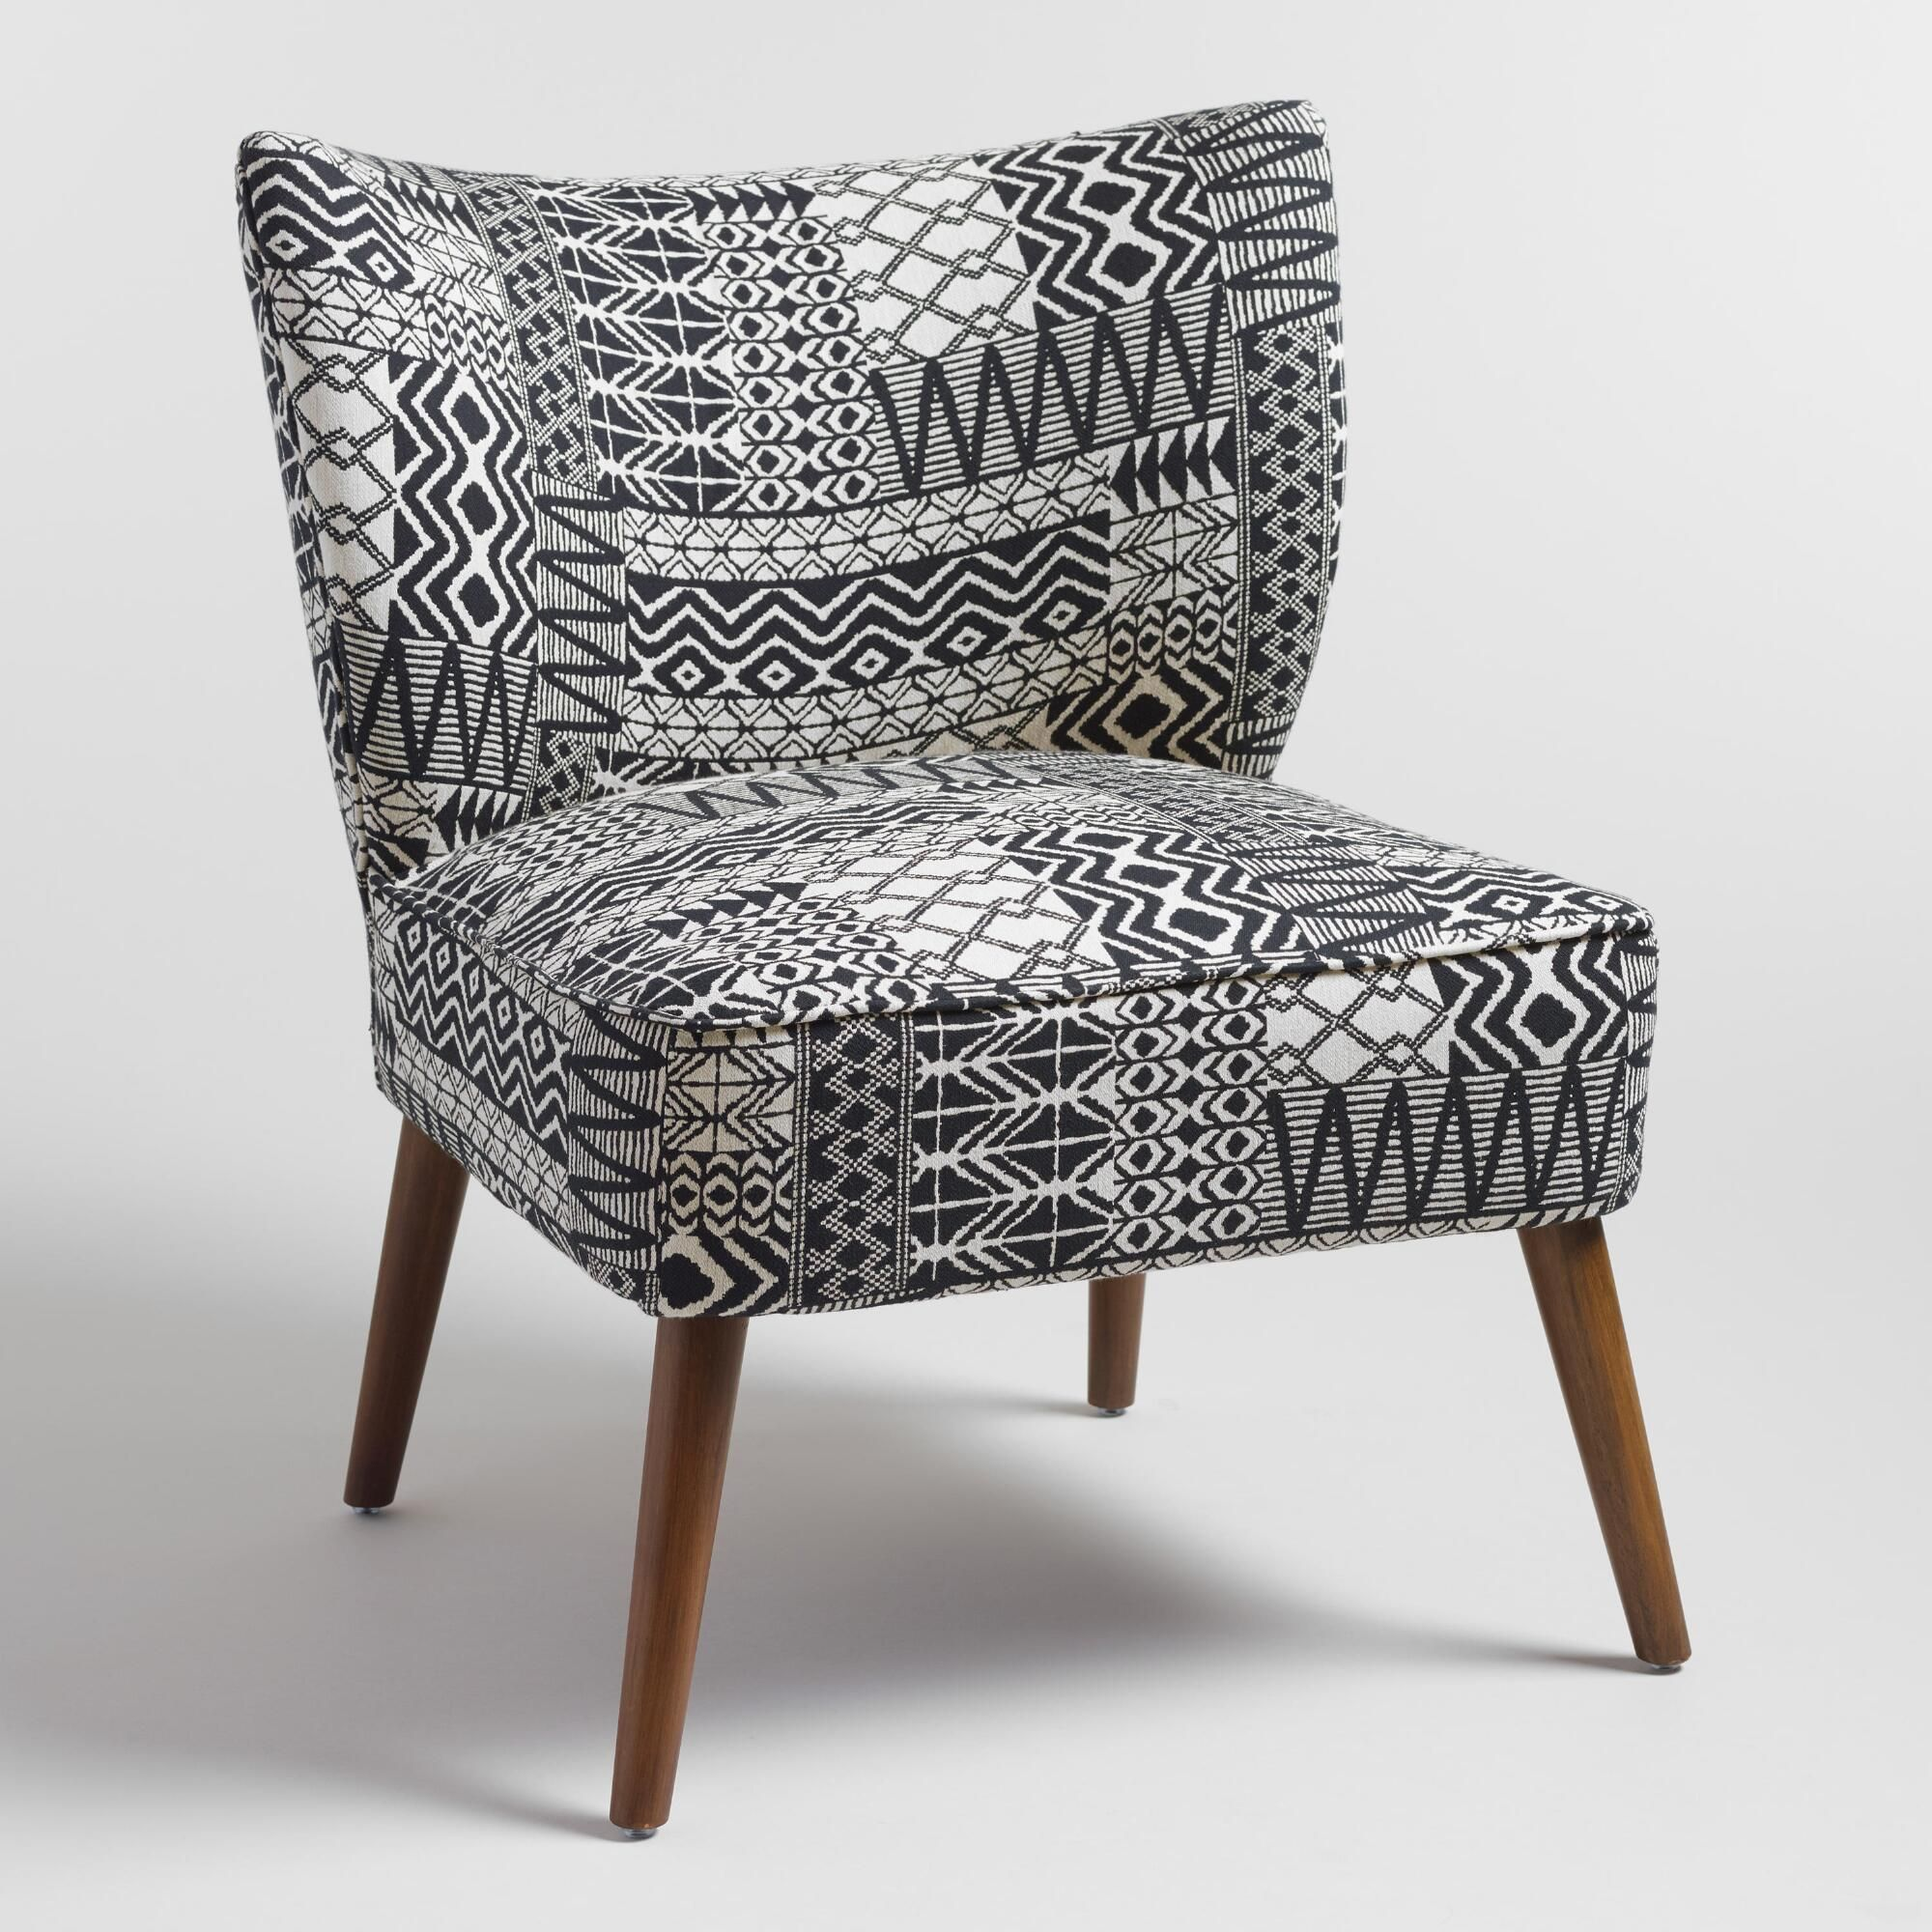 Plush Chairs Our Plush Accent Chair Brings A Boho Vibe To Any Space With Black